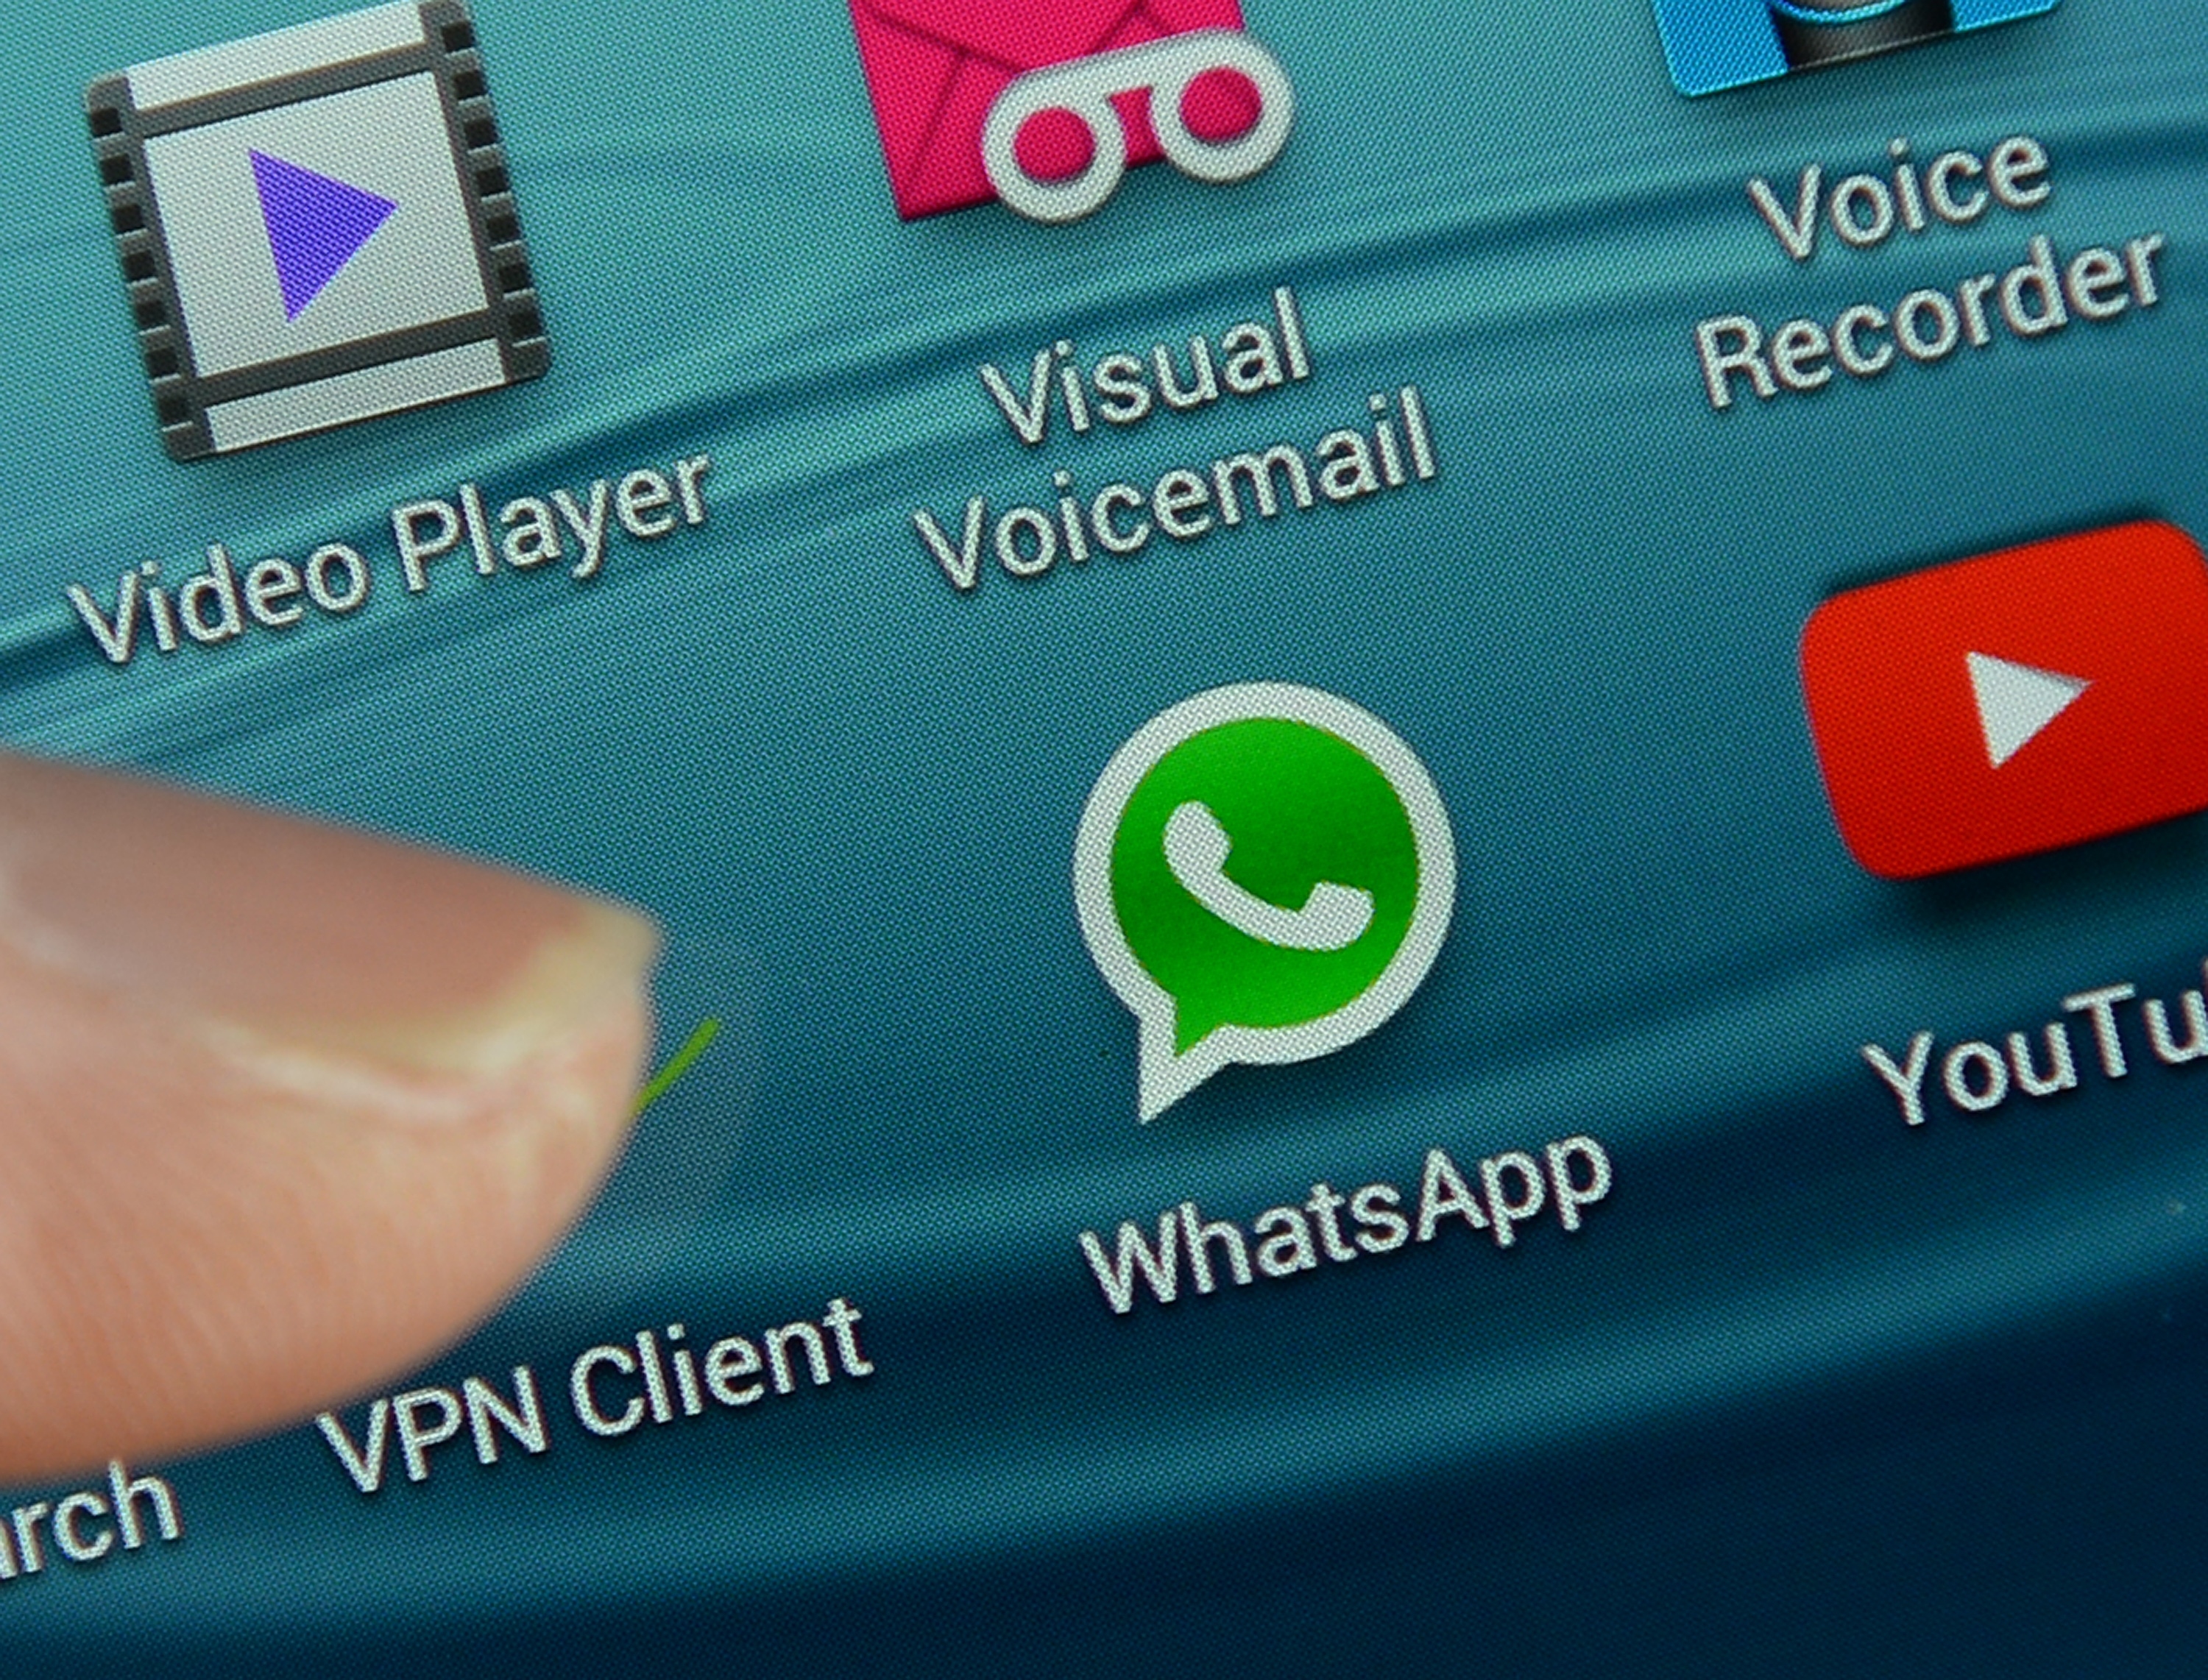 WhatsApp to Add Voice Calls in Q2 2014, Passes 465M Active Users